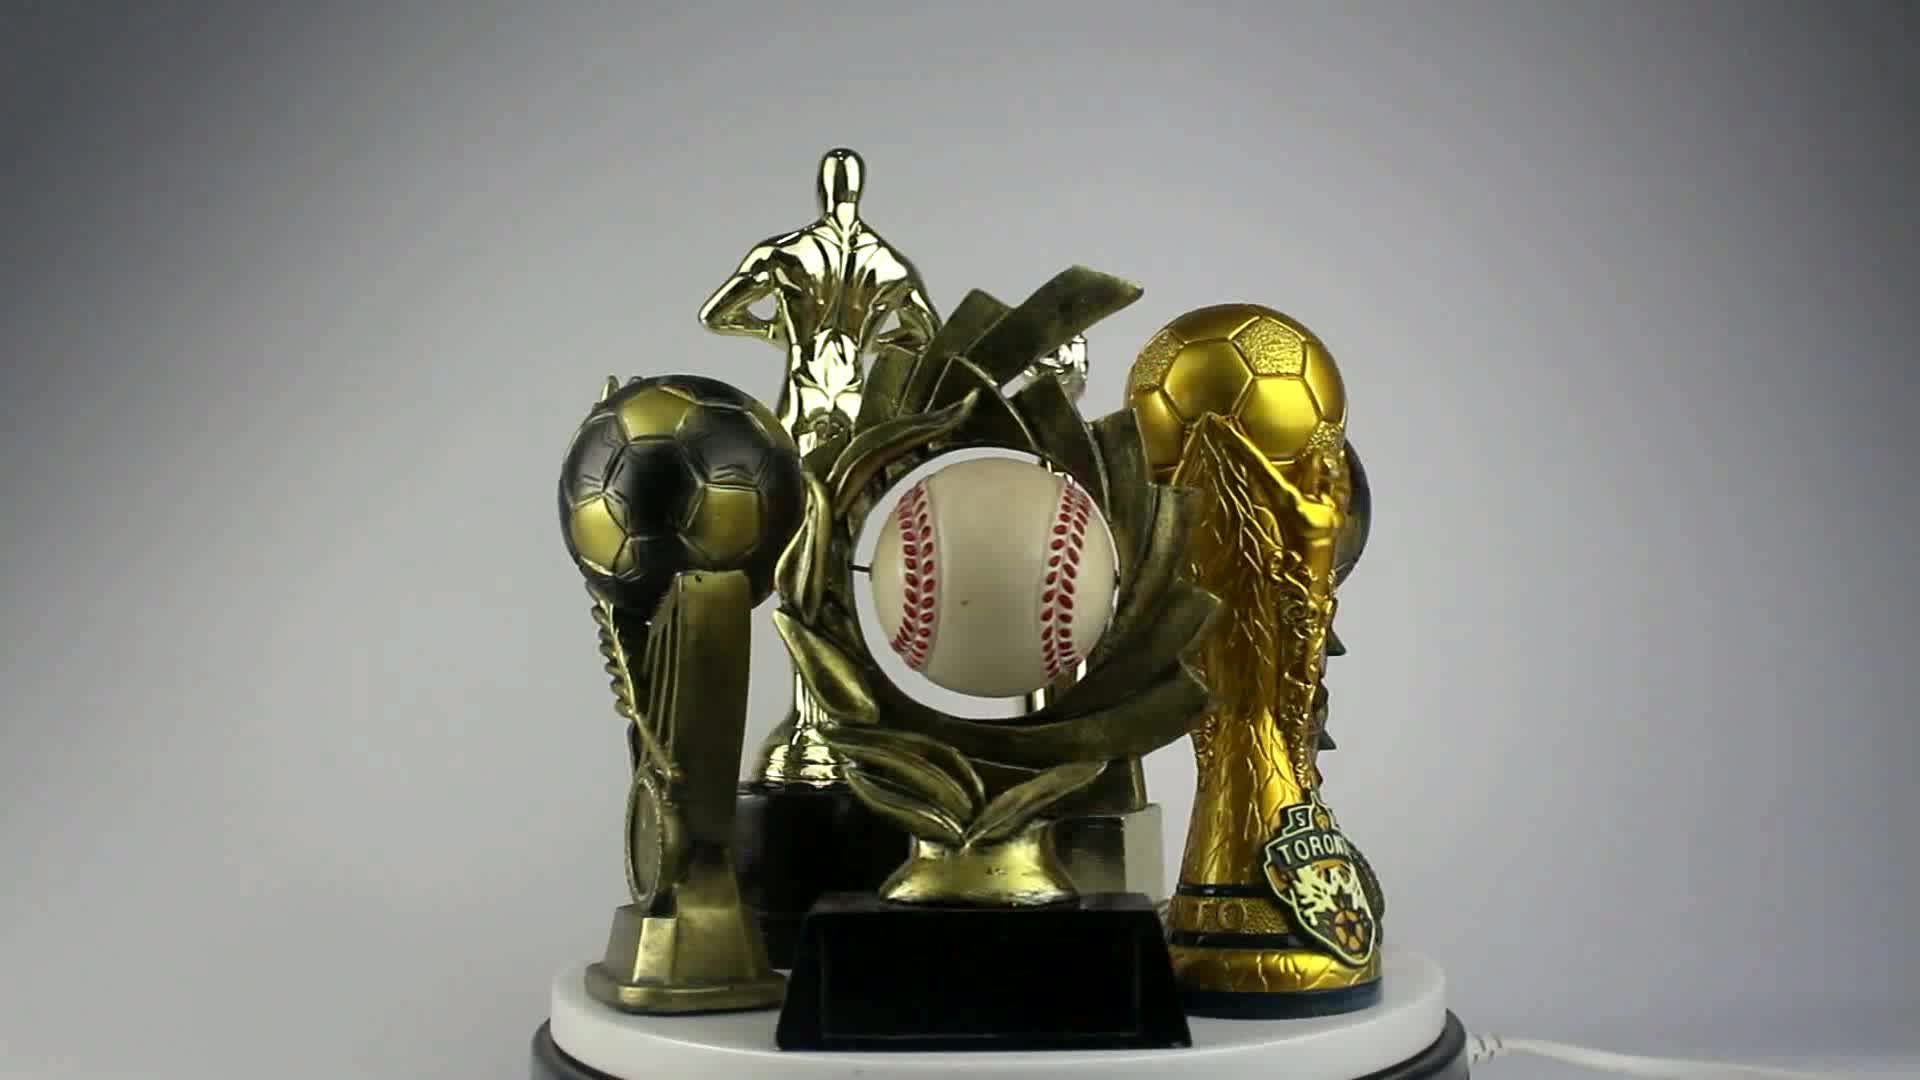 2014 harvest trophy,world cup champion glass trophy,awards